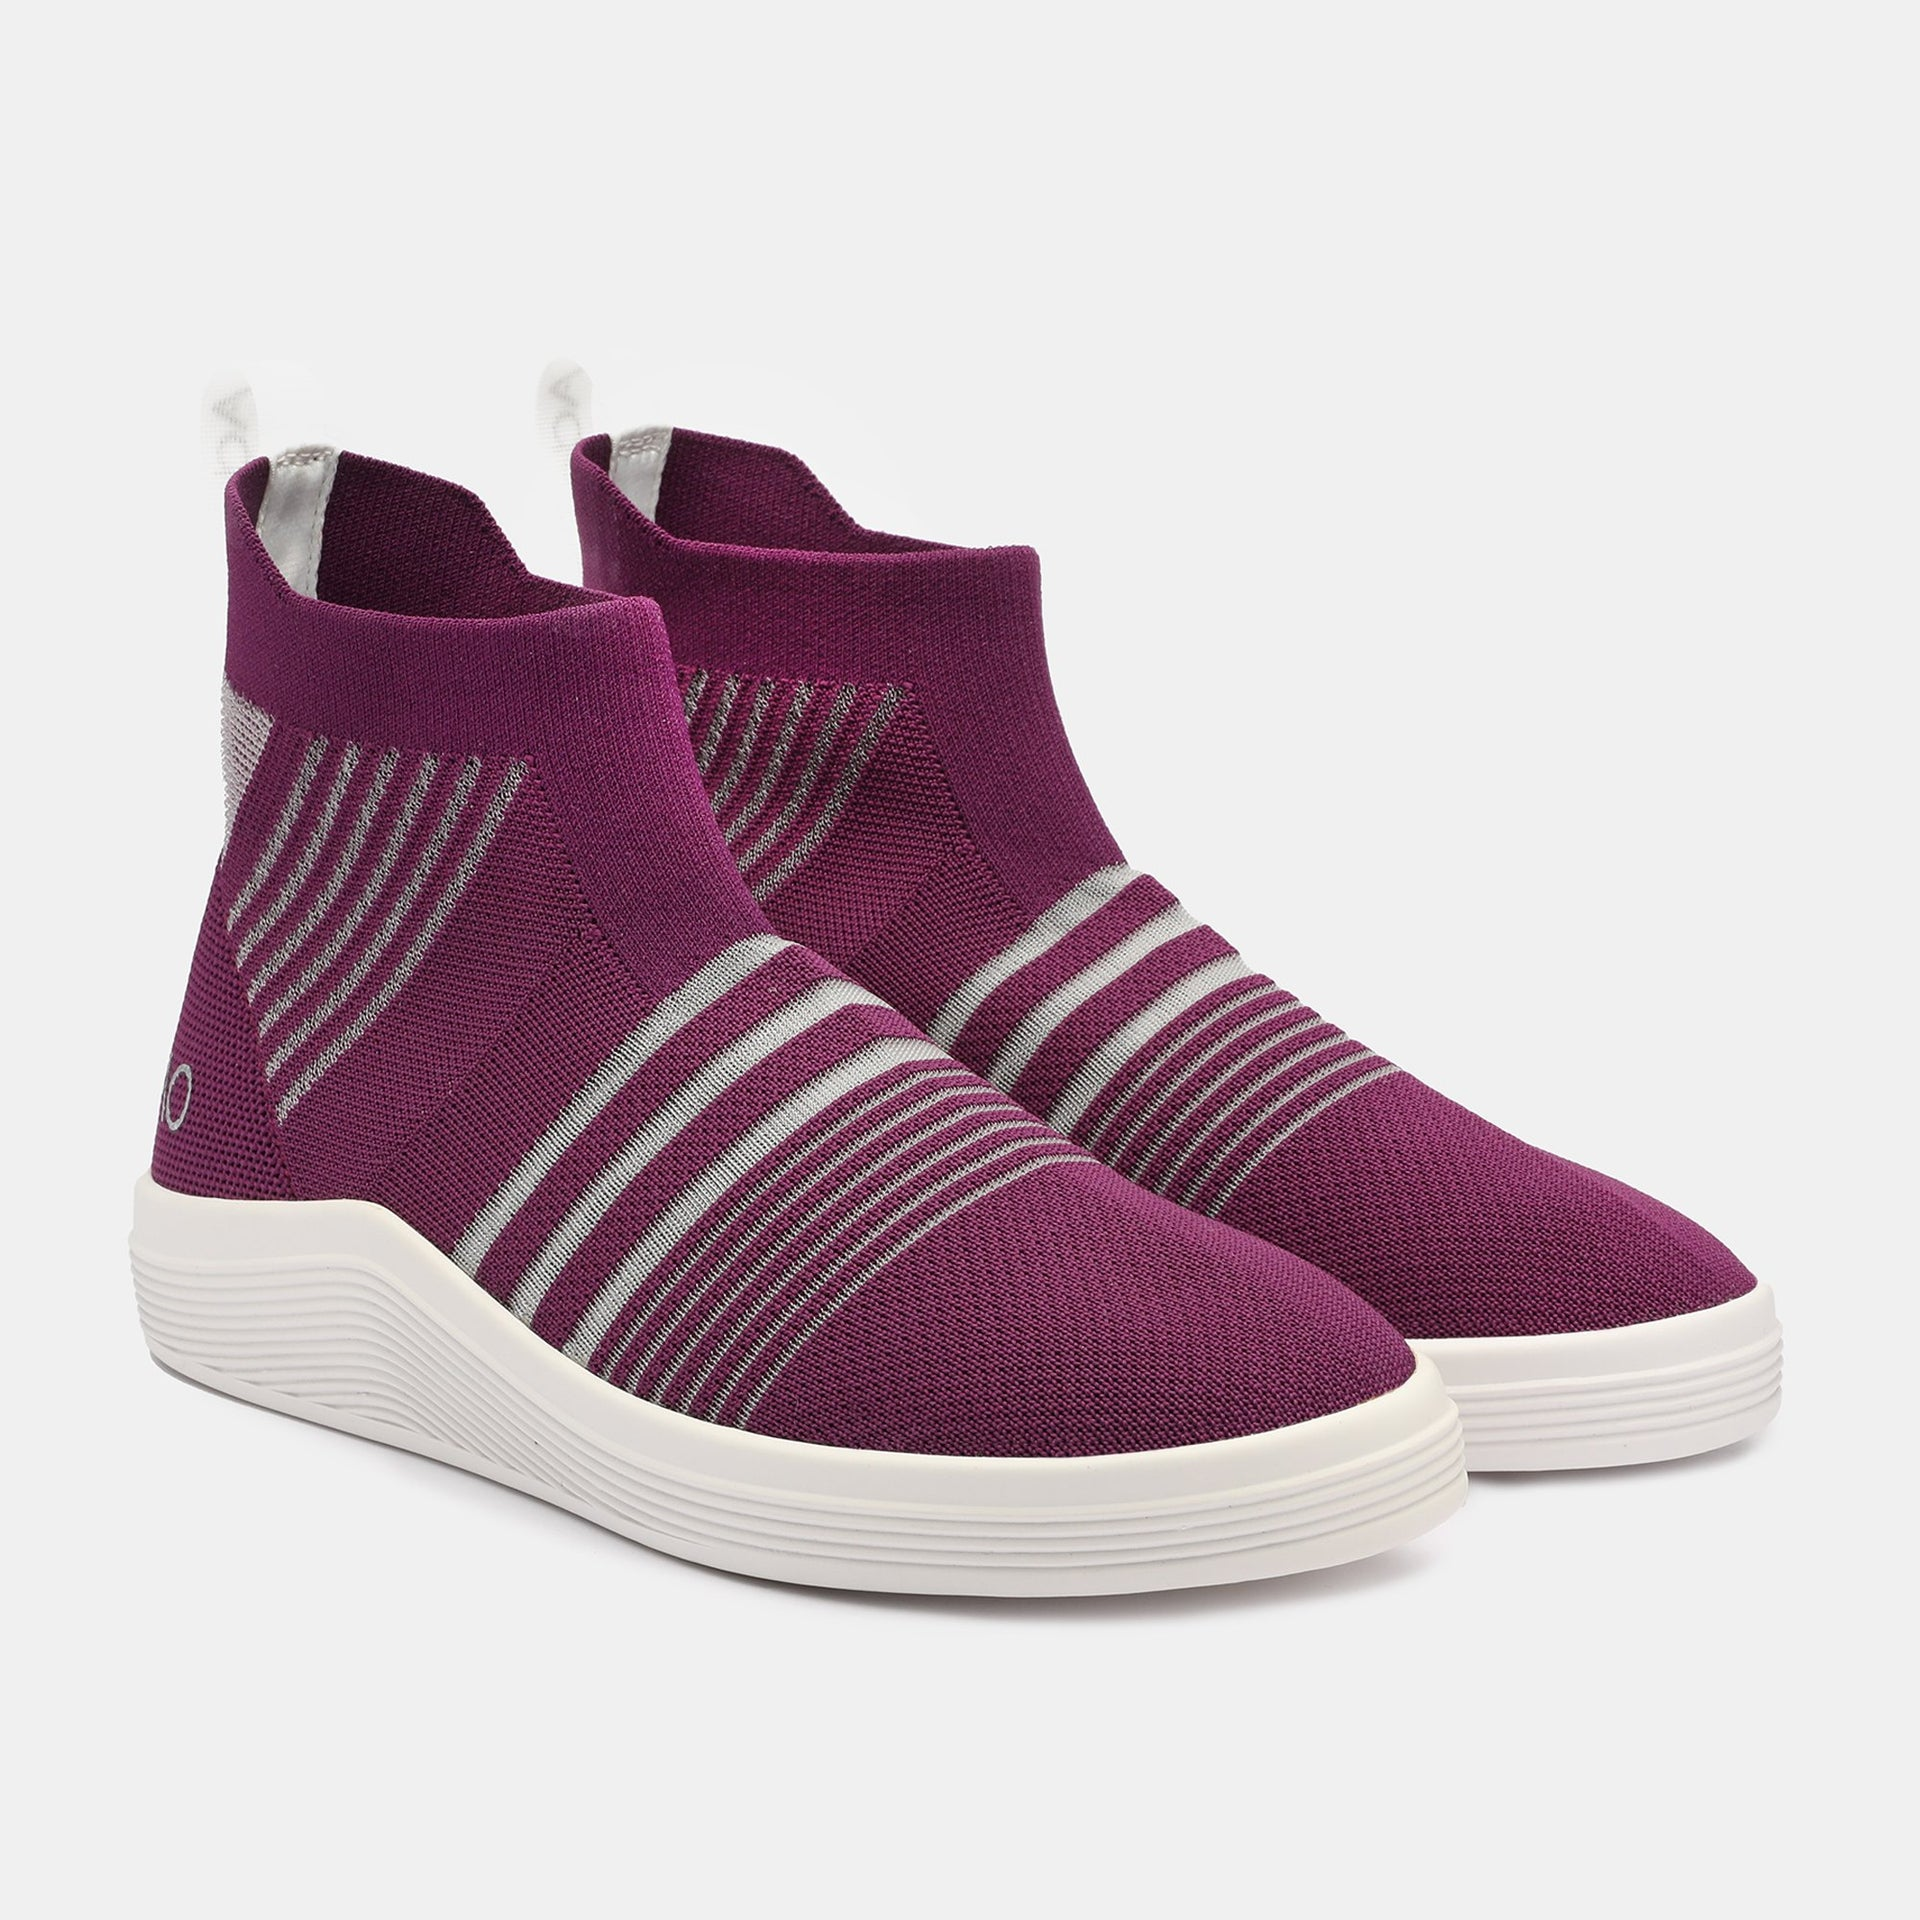 STRIPES 5.10 NET PLUM